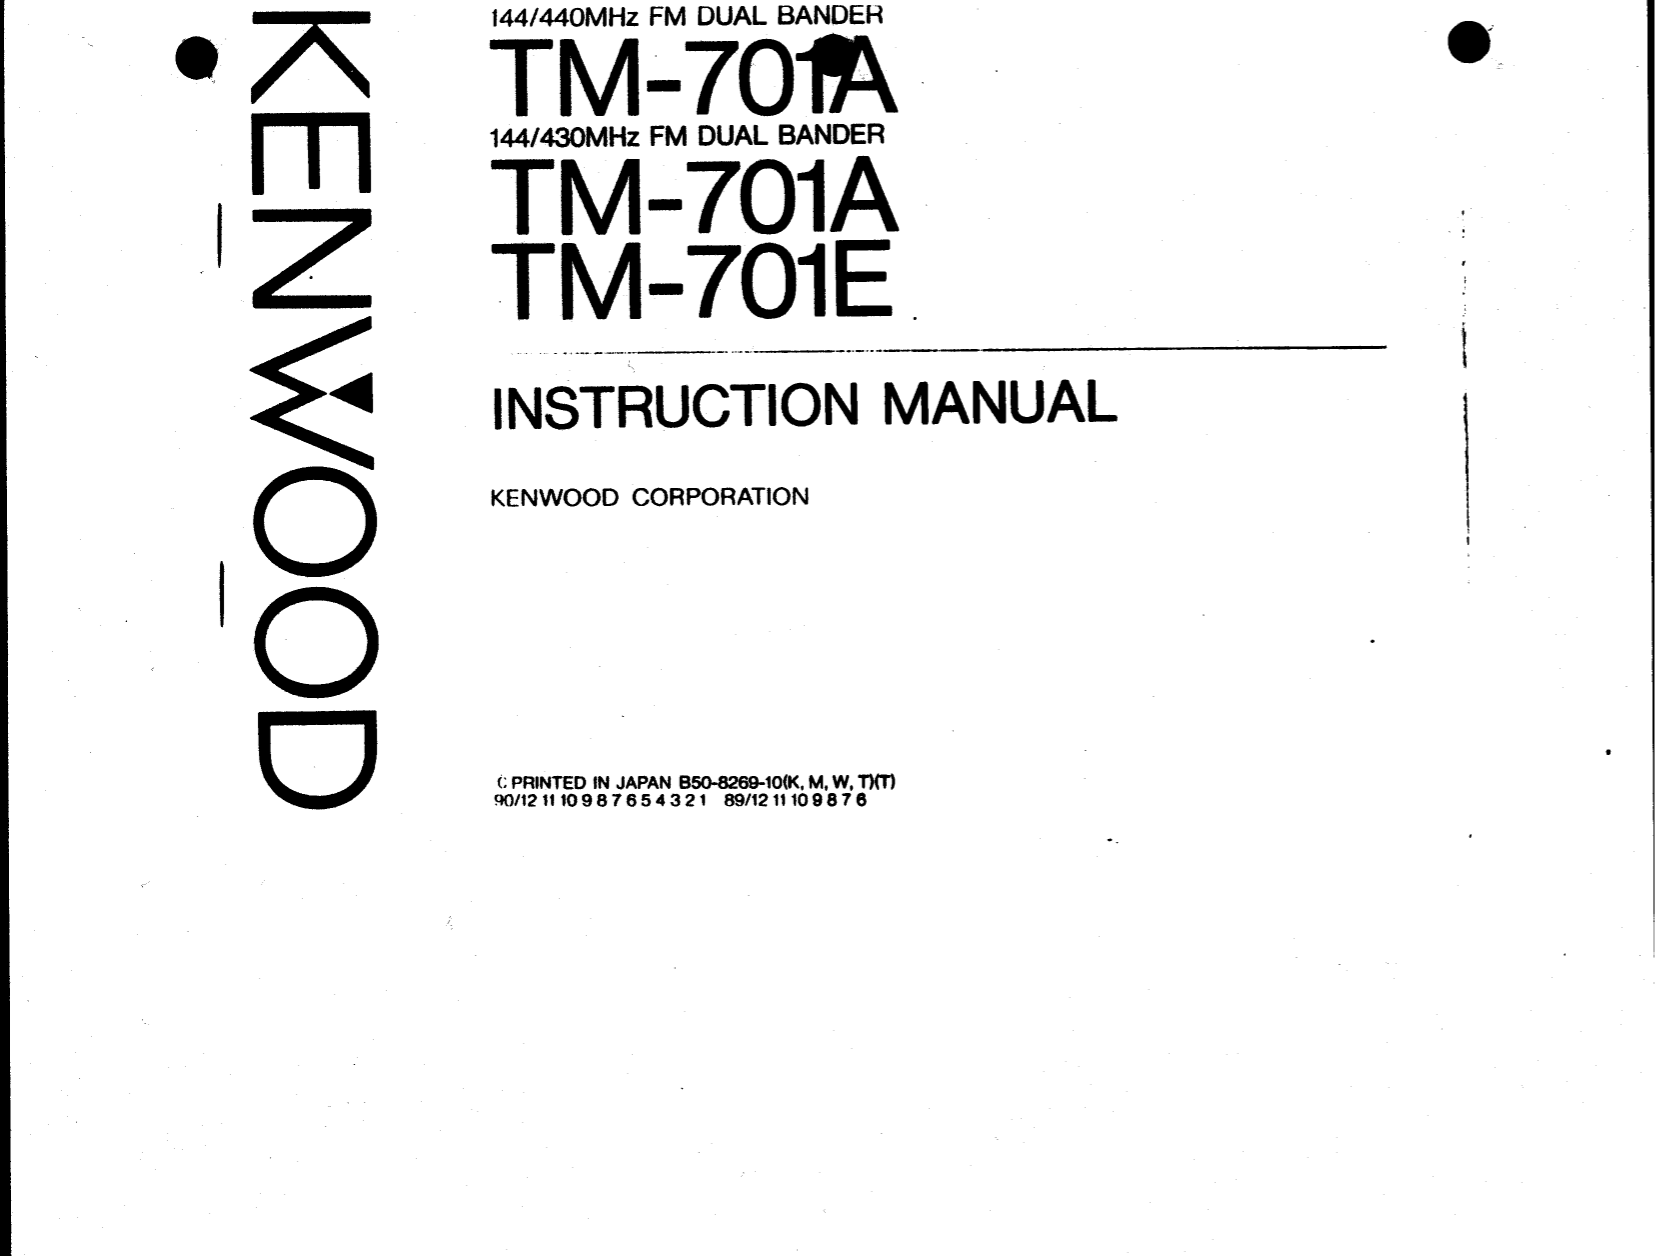 Kenwood Wiring Diagram Krc309s Wiring Diagrams besides Pioneer Wiring Diagram 1998 Land Rover Discovery furthermore Pioneer Deh 225 Wiring additionally Wiring Diagram For Clarion Xmd1 besides Jvc Kw Avx710 Wiring Harness. on pioneer car stereo manuals